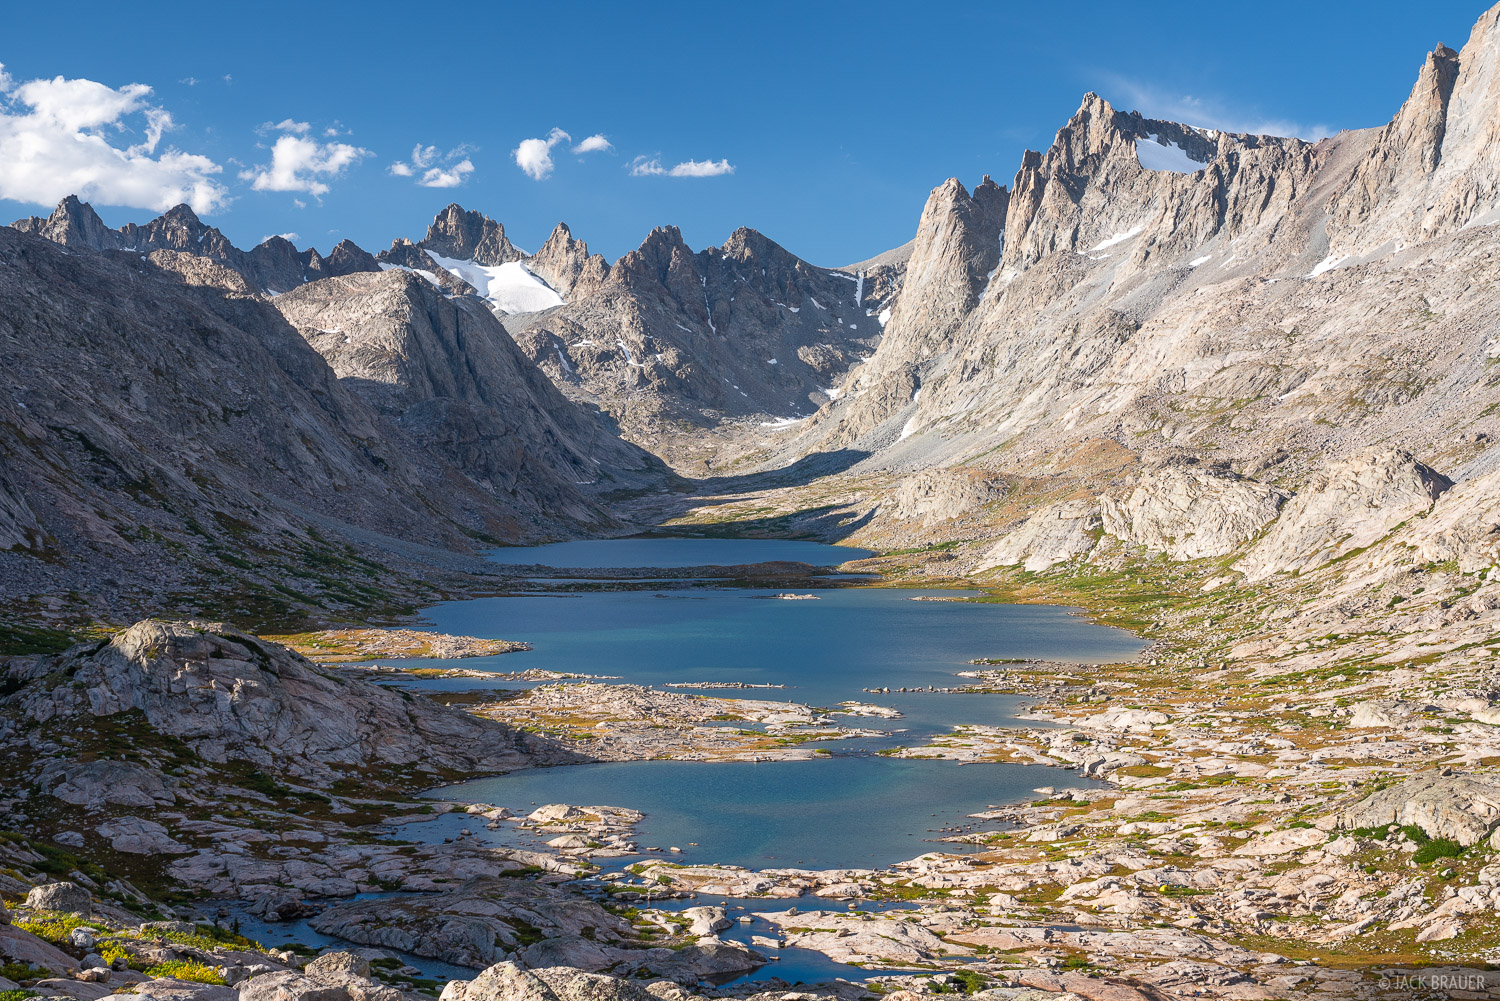 Bridger Wilderness, Mount Helen, Titcomb Lakes, Wind River Range, Wyoming, photo